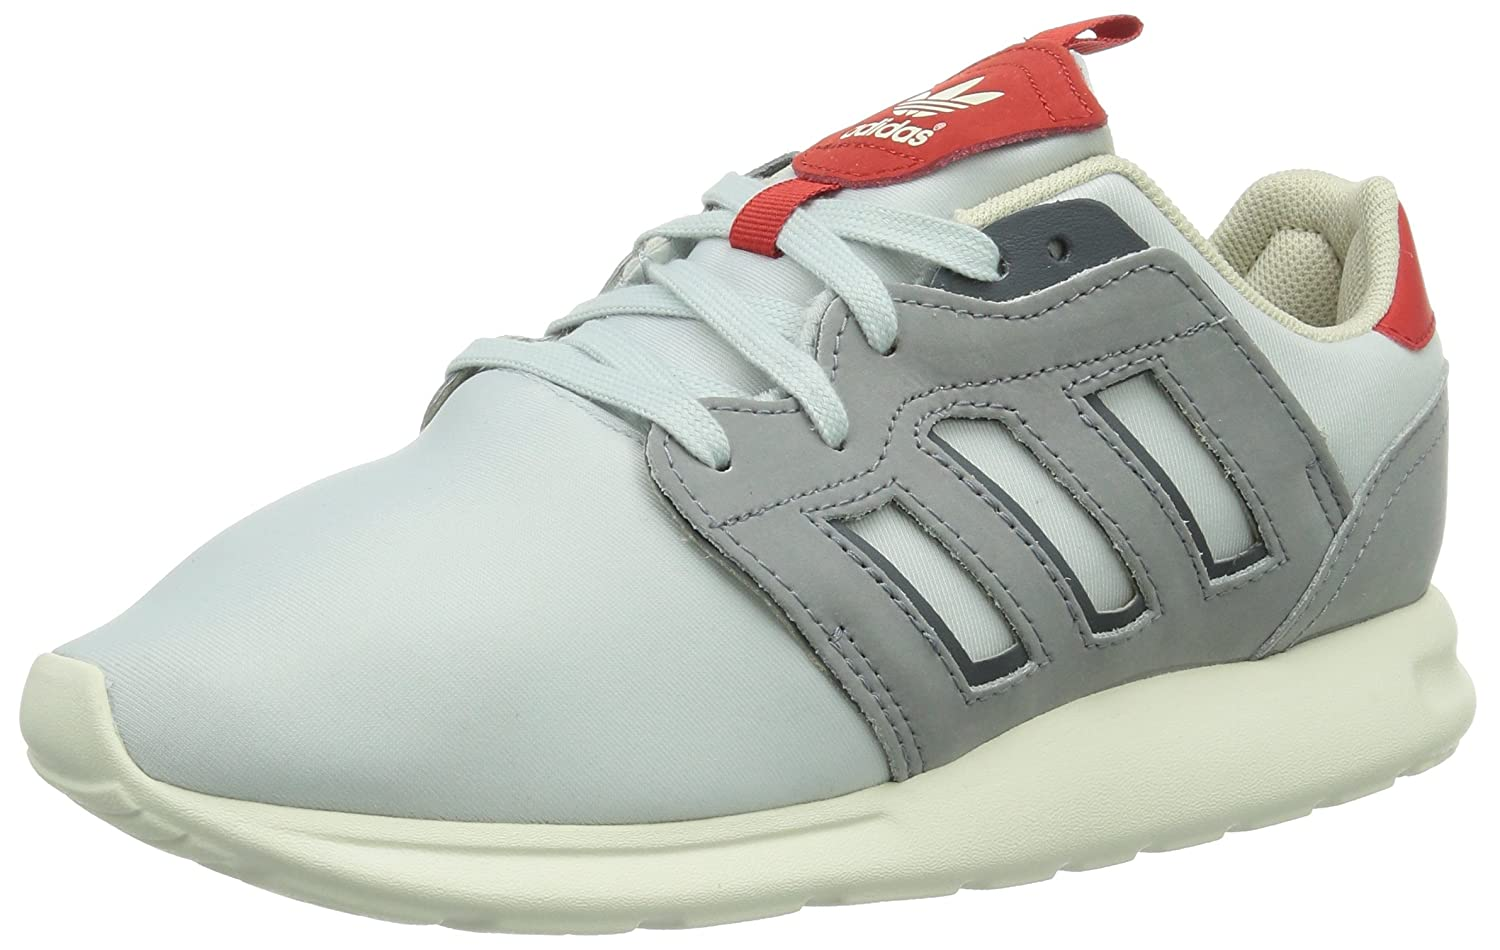 chaussures de sport 54c1b 0bf5f adidas Zx 500 2.0, Women's Trainers, Grey (Light Grey/Light ...